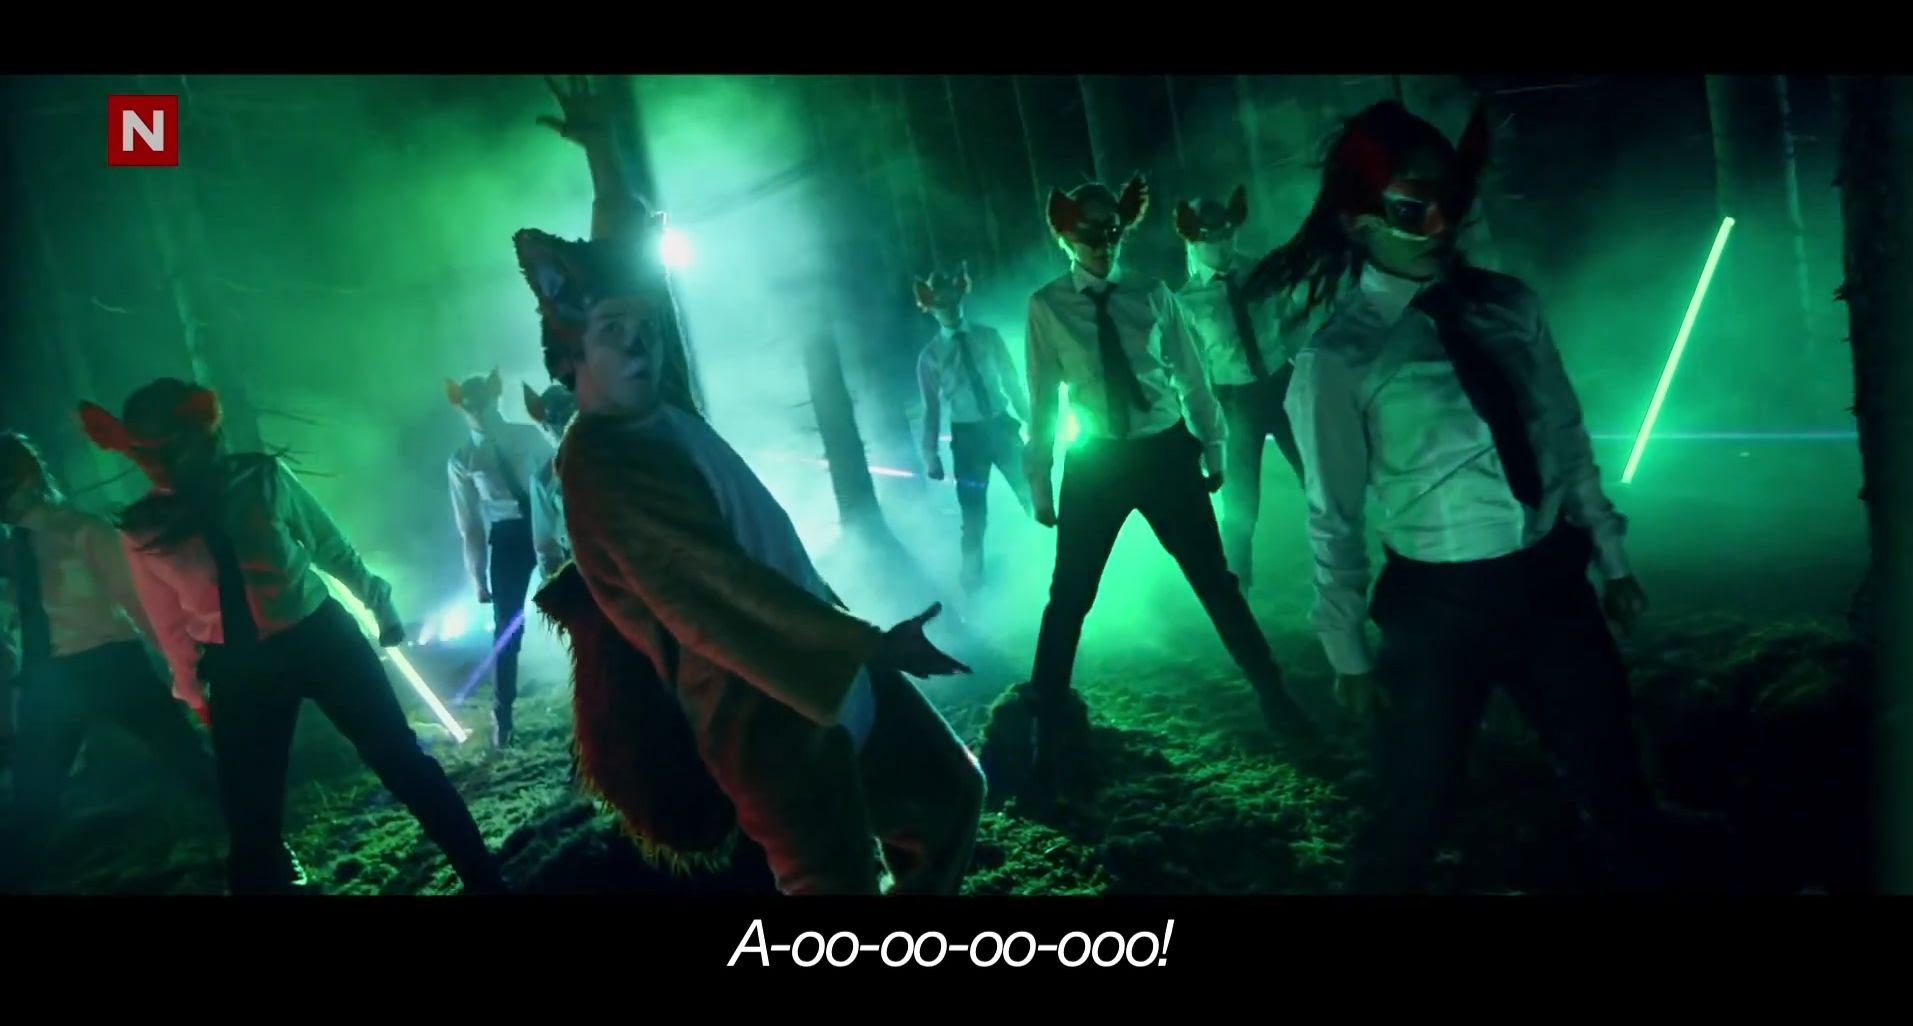 Viral Stupidity: What Does the Fox Say?